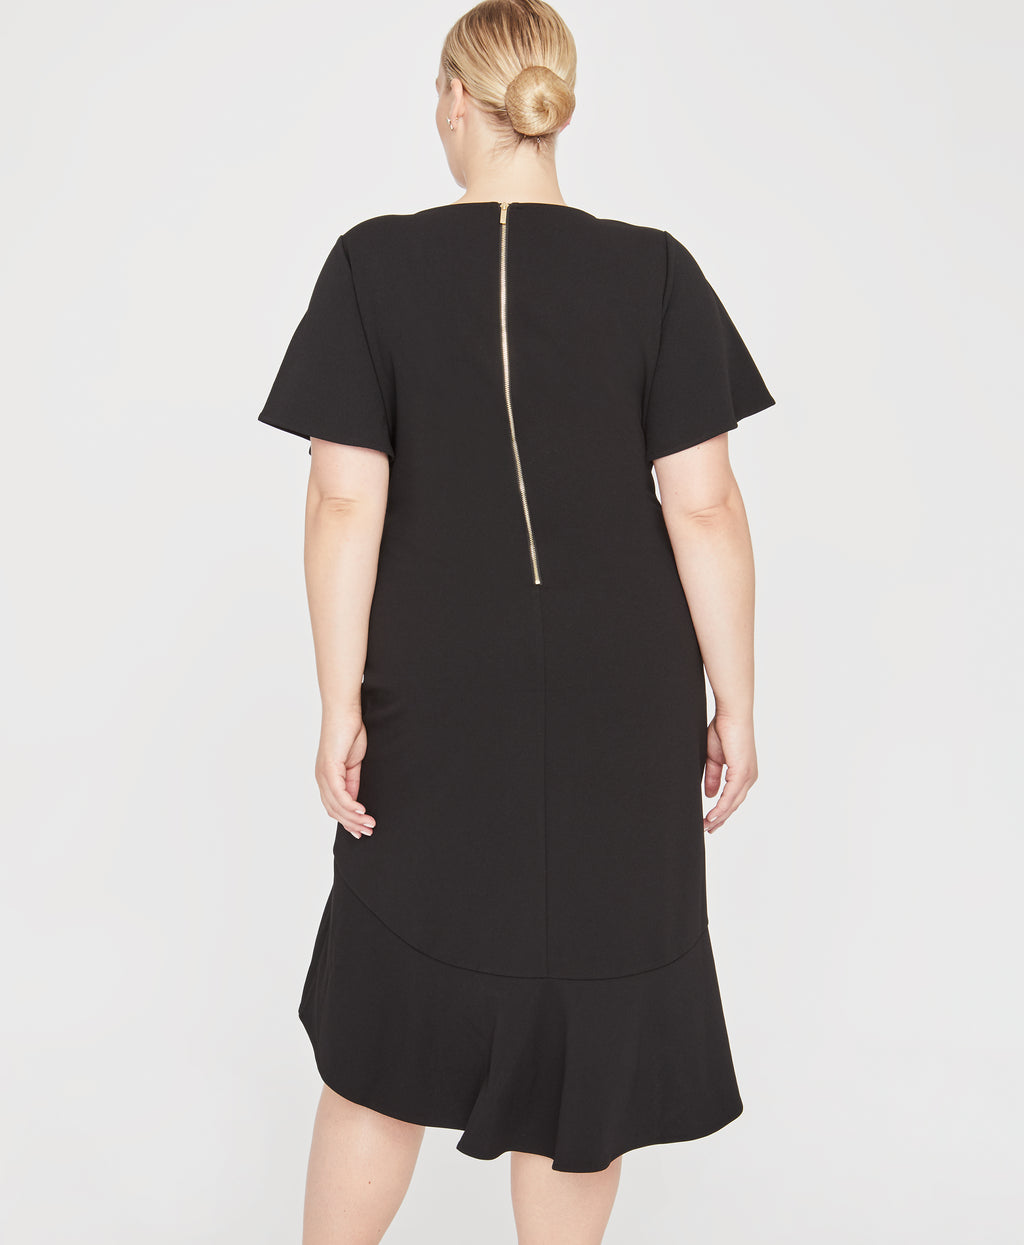 Willow Dress | Willow Dress